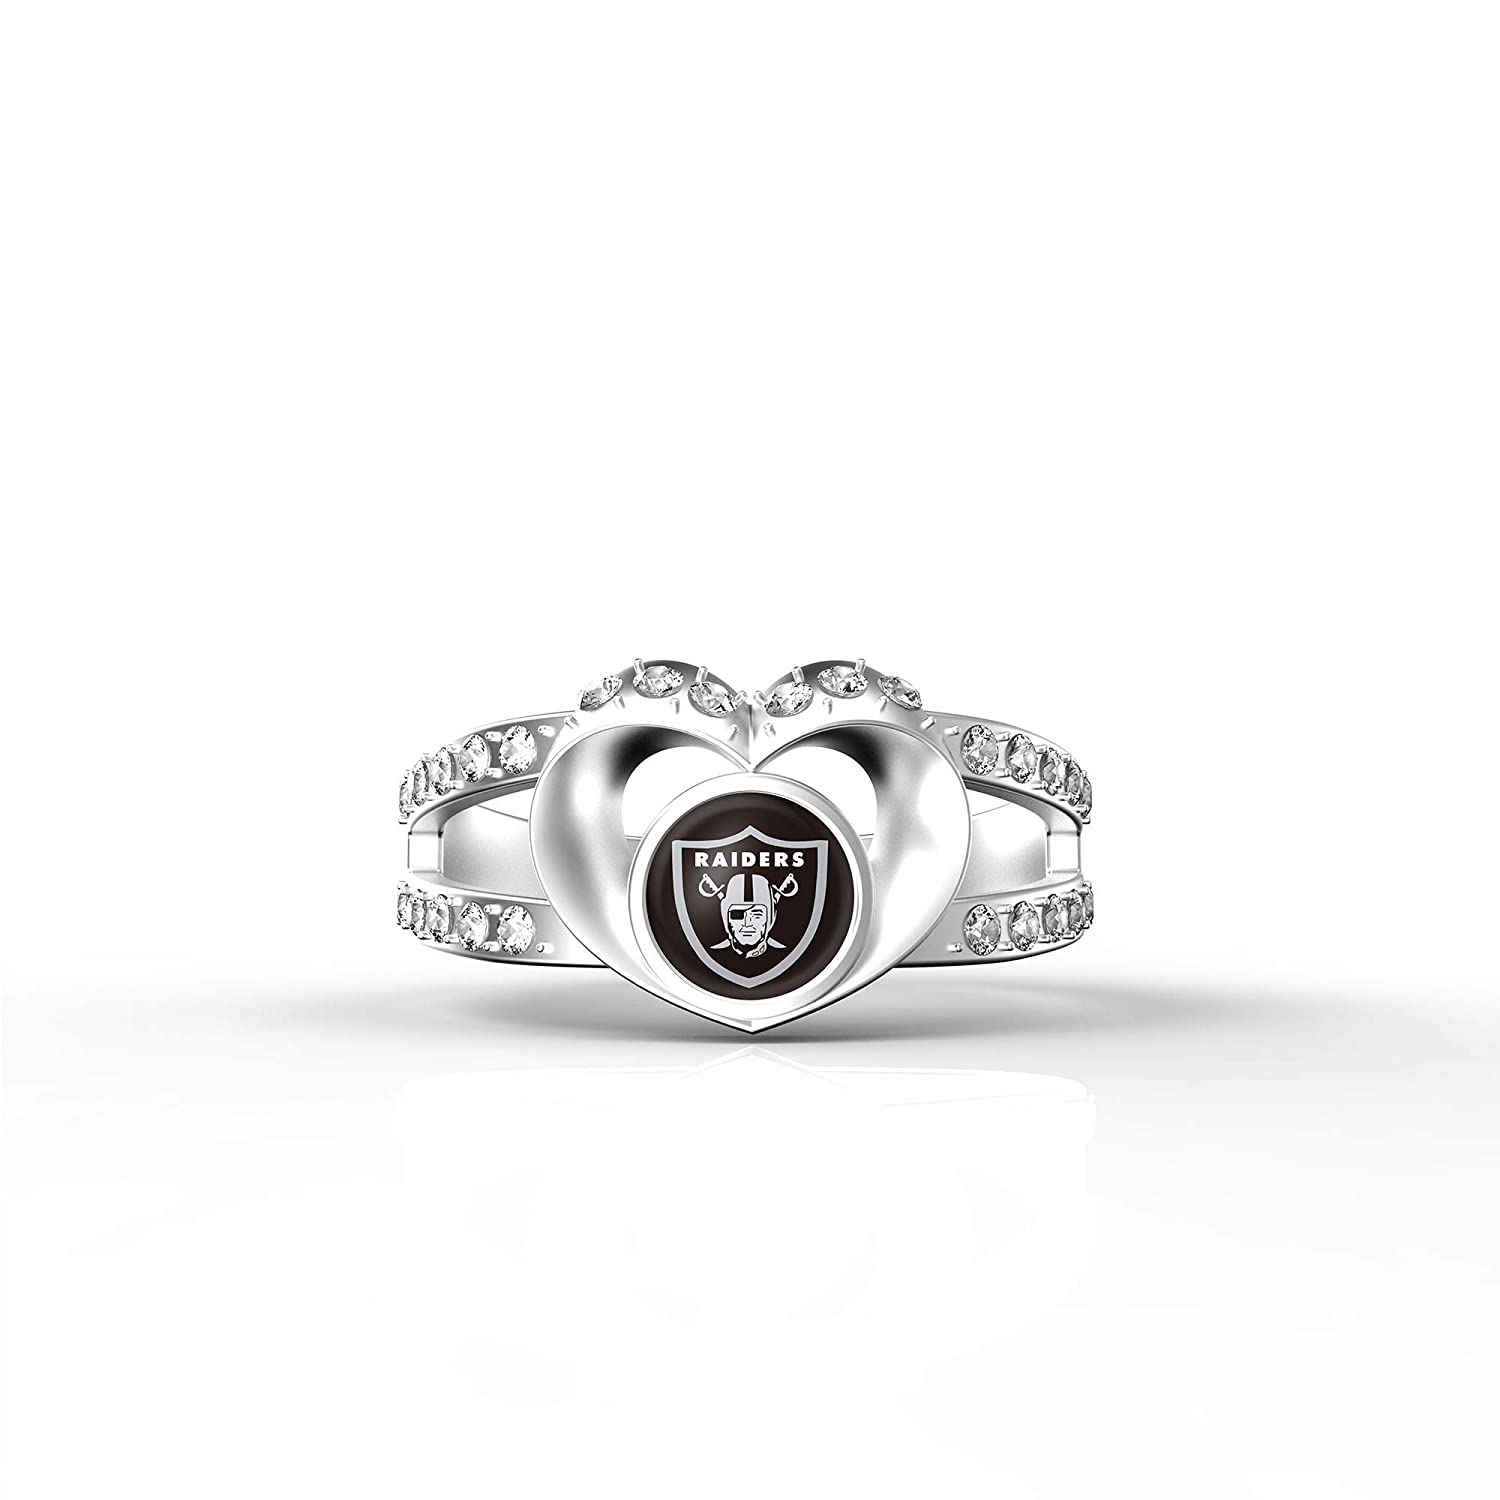 MT Sports store NFL Heart Shaped Lady Ring Lady Exquisite Heart Shaped Ring Oakland Raiders